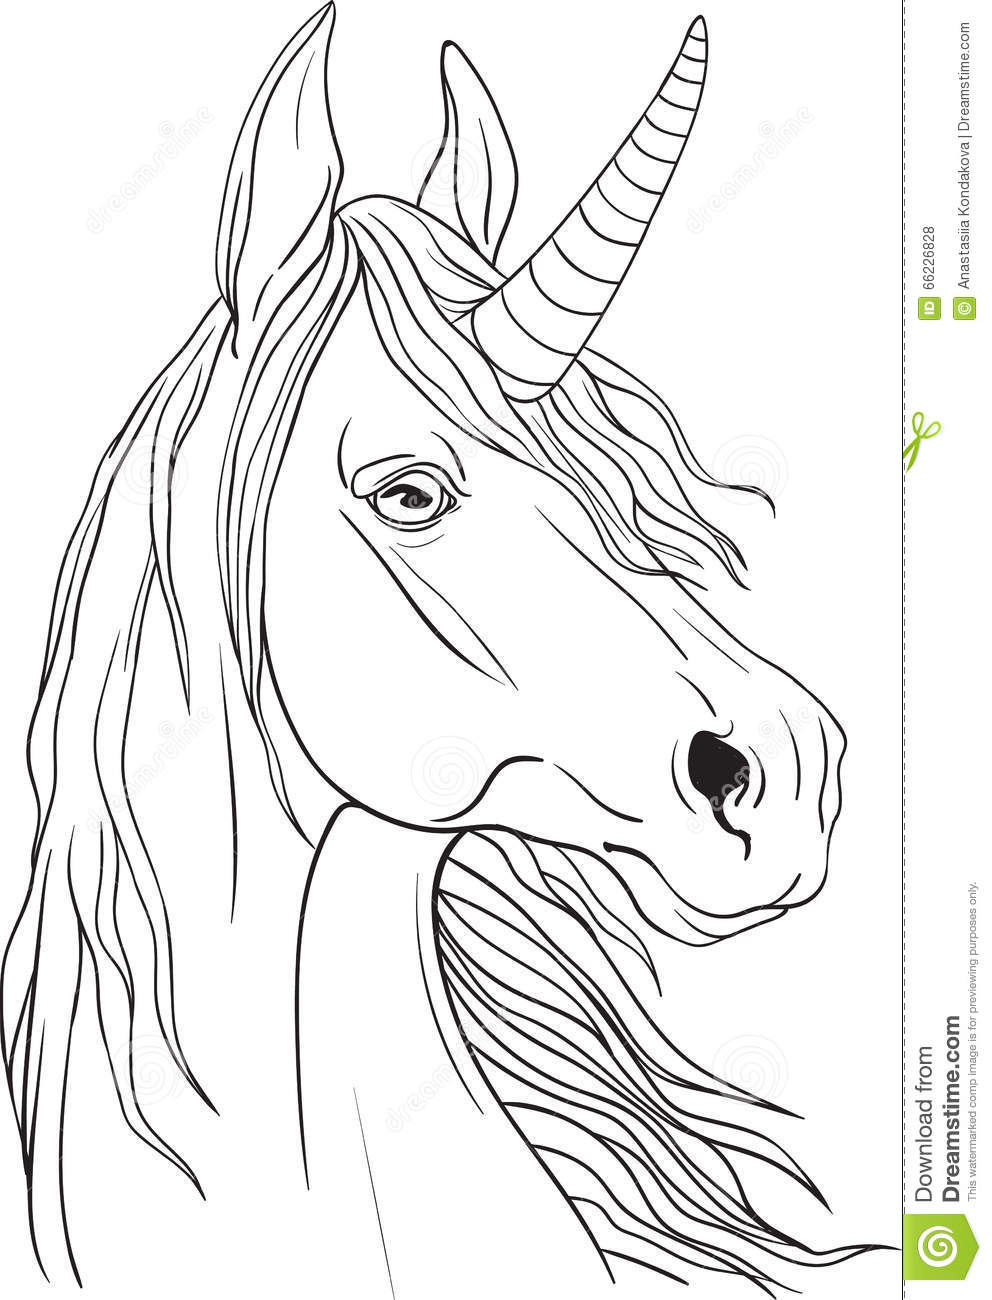 Coloring book with aportrait of a unicorn with a flowing mane